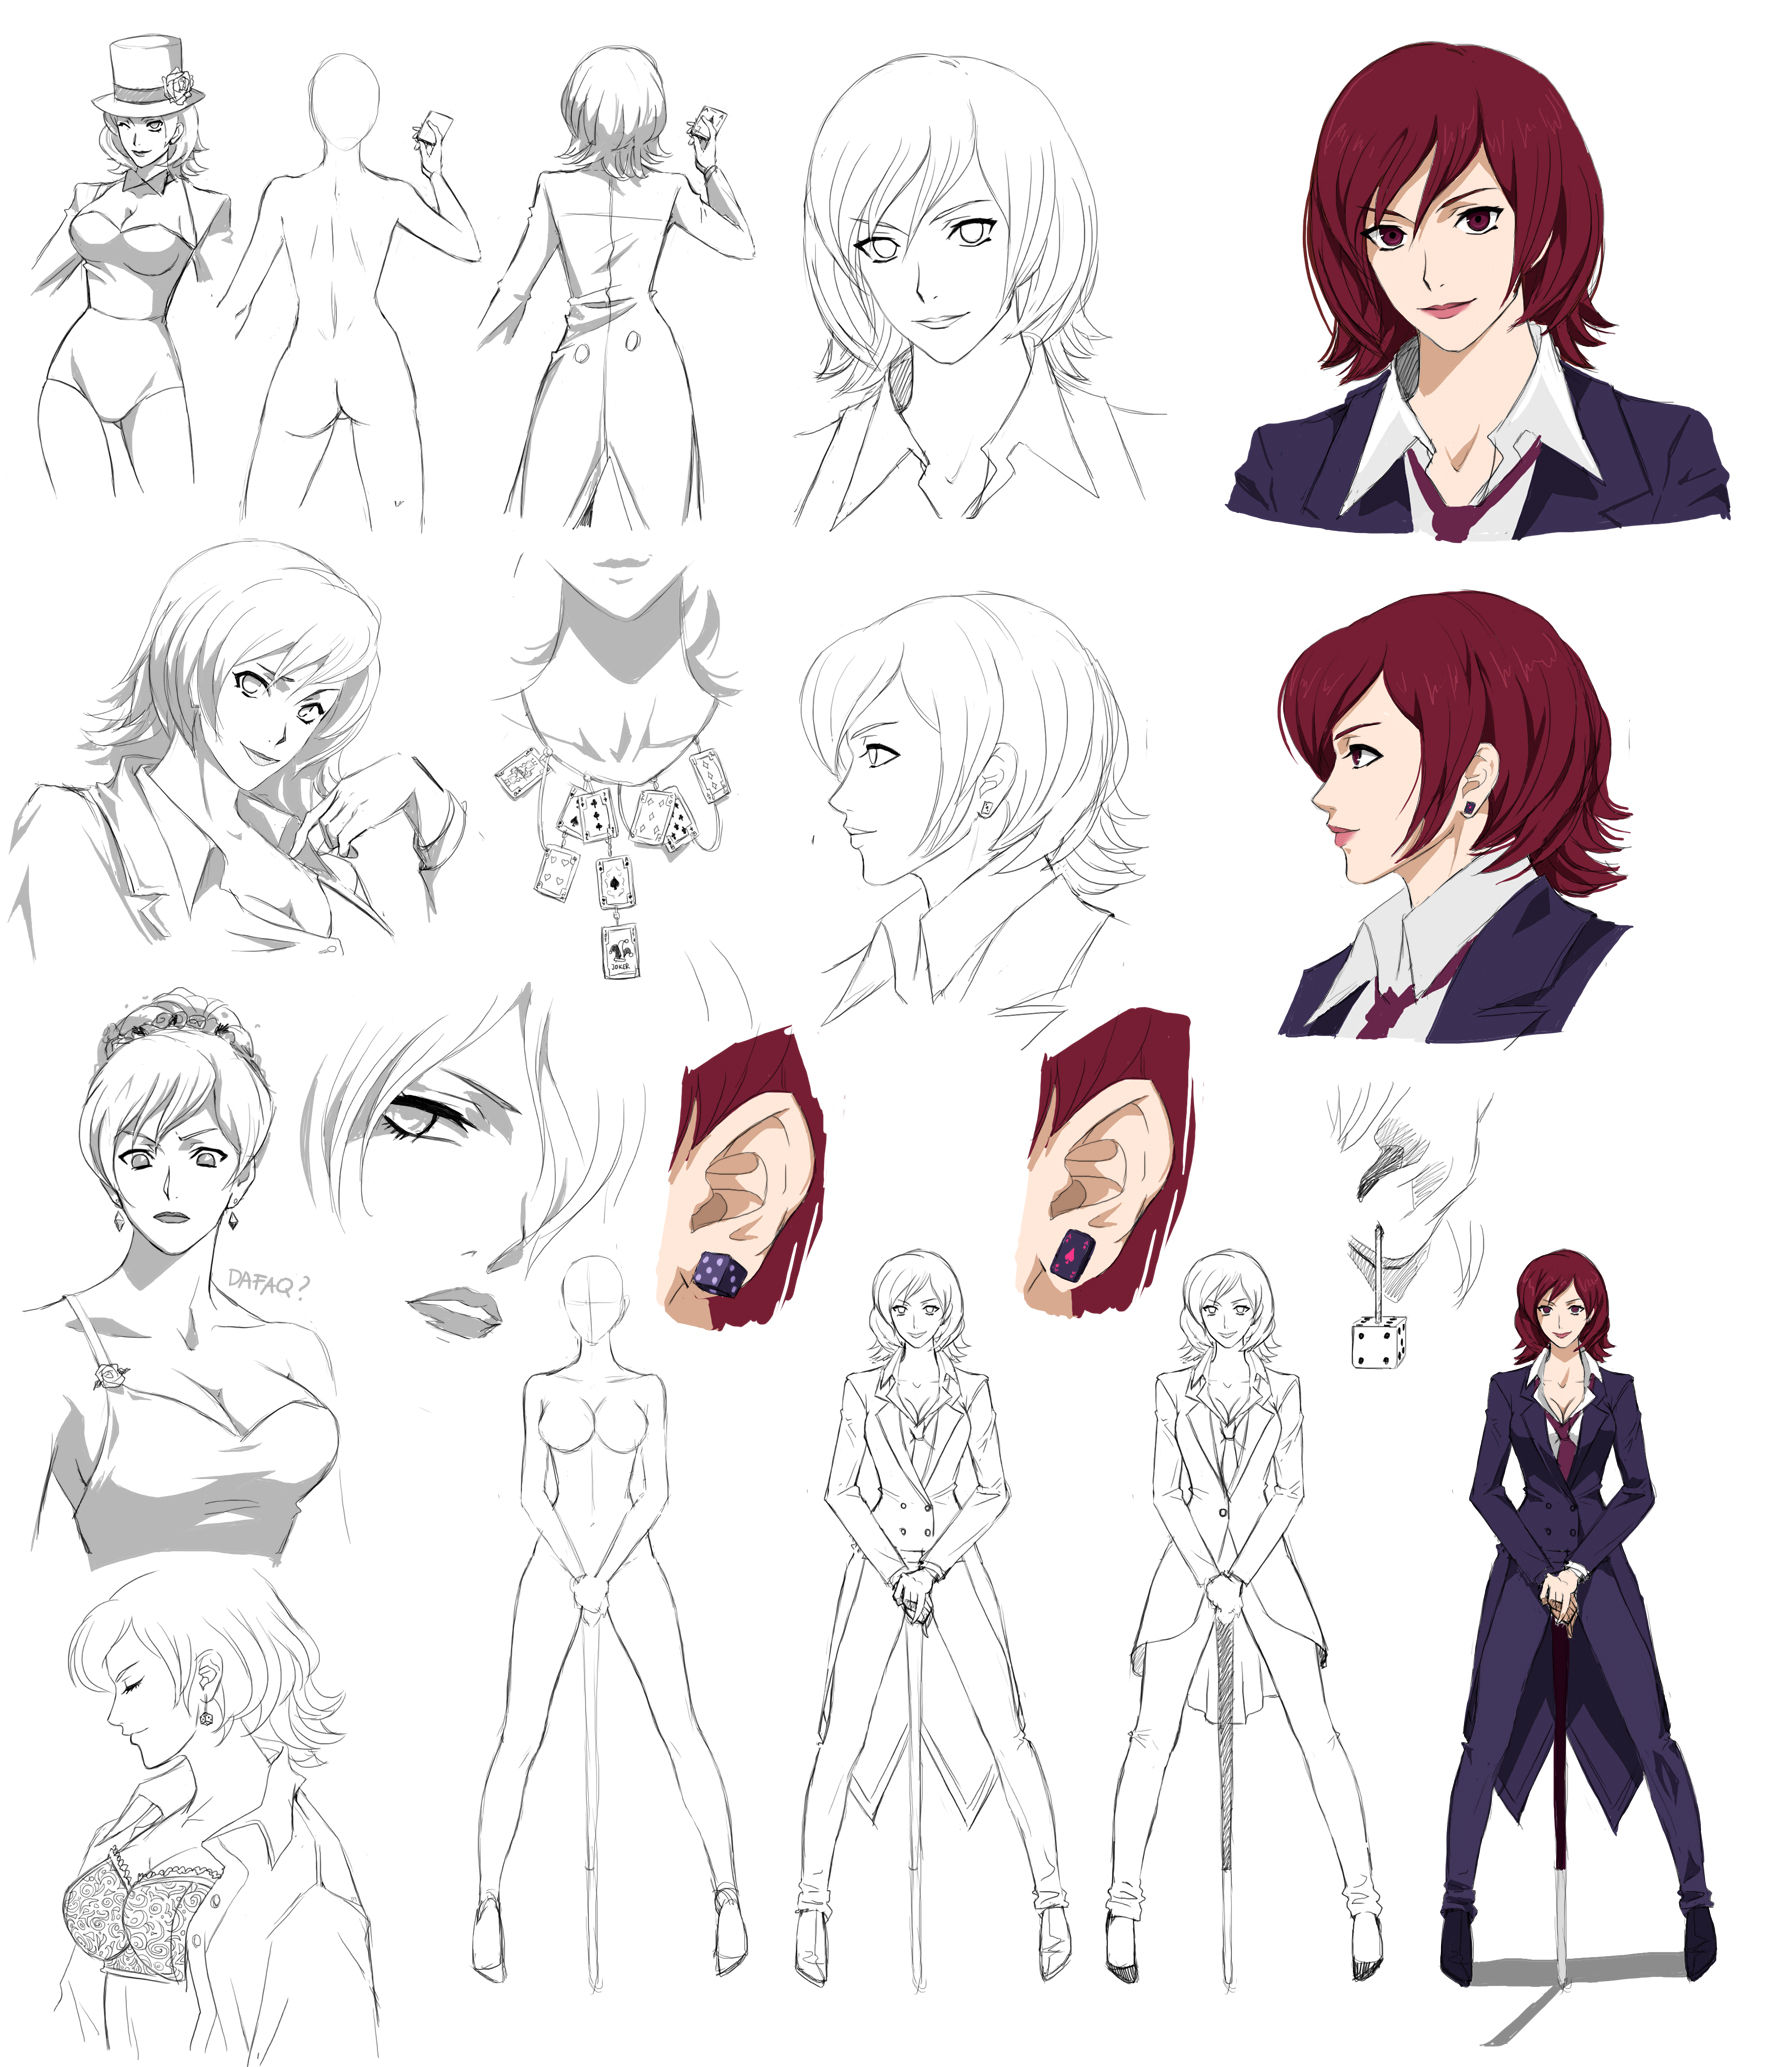 Alive Character Design Haitao Su Pdf : Female design steryle commision by precia t on deviantart